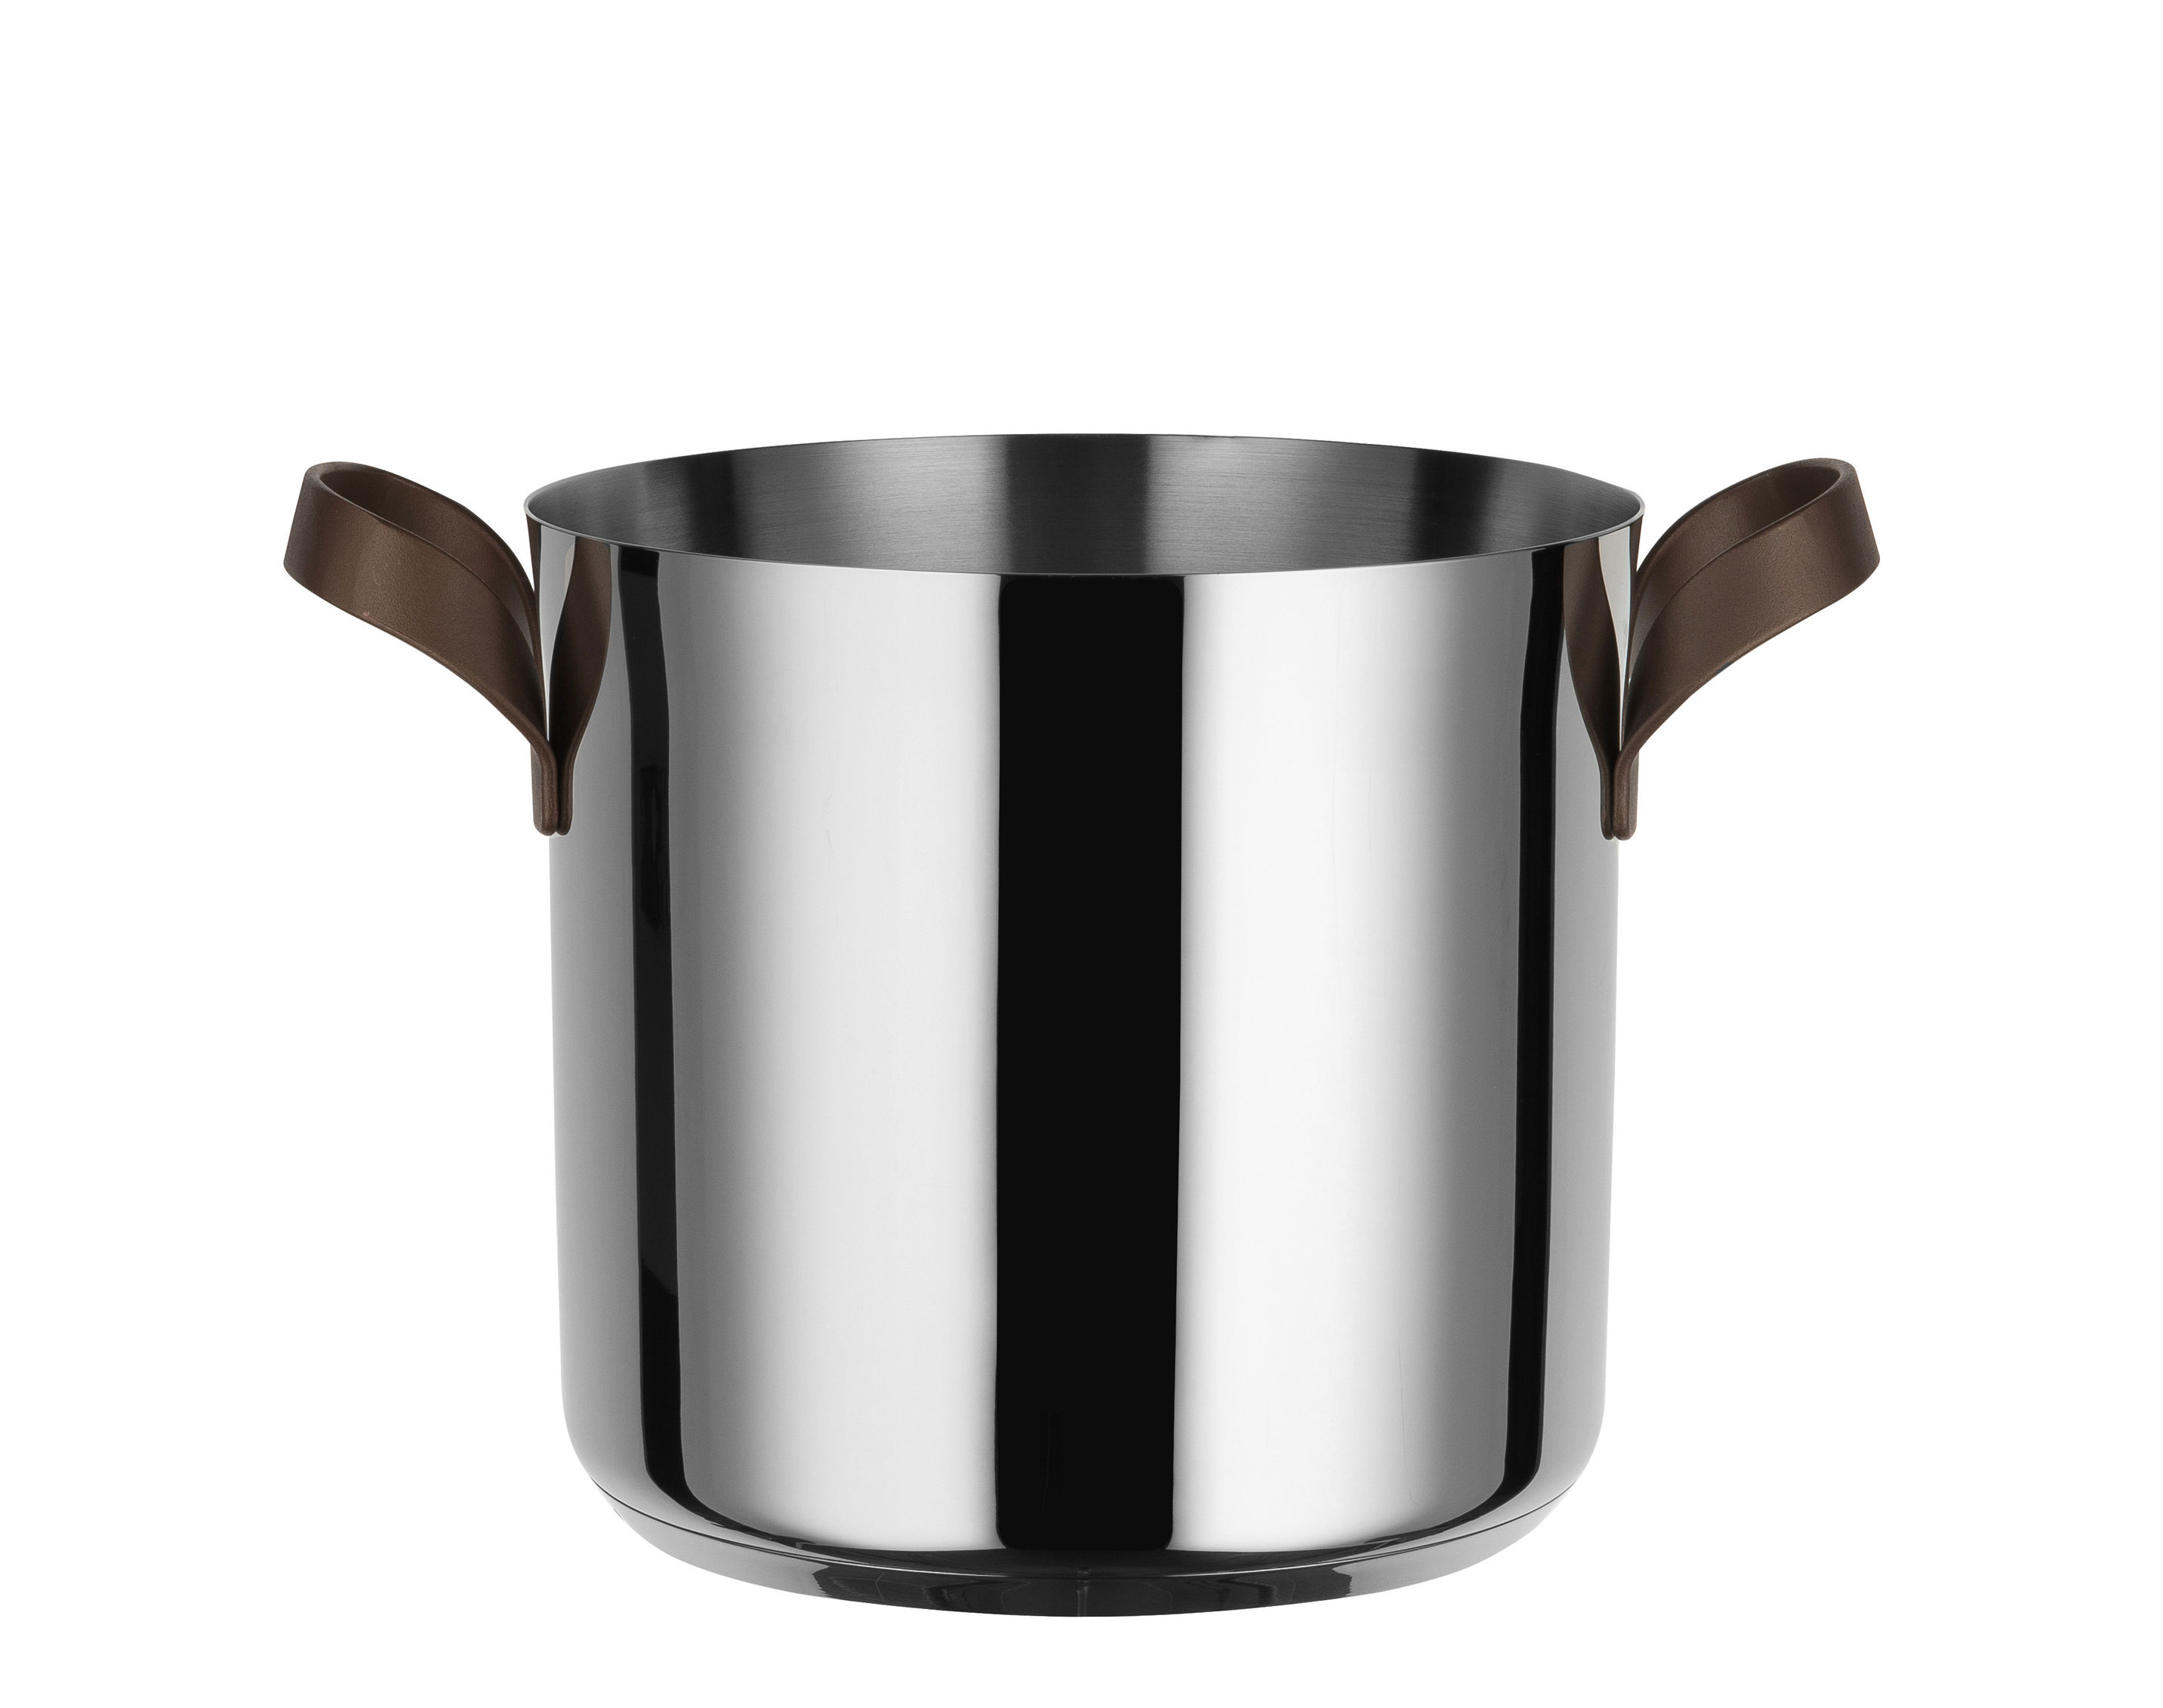 Kitchenware - Pots & Pans - Edo Pot - / H 19 cm - 4.9 L by Alessi - Steel / Brown handles - Stainless steel 18/10